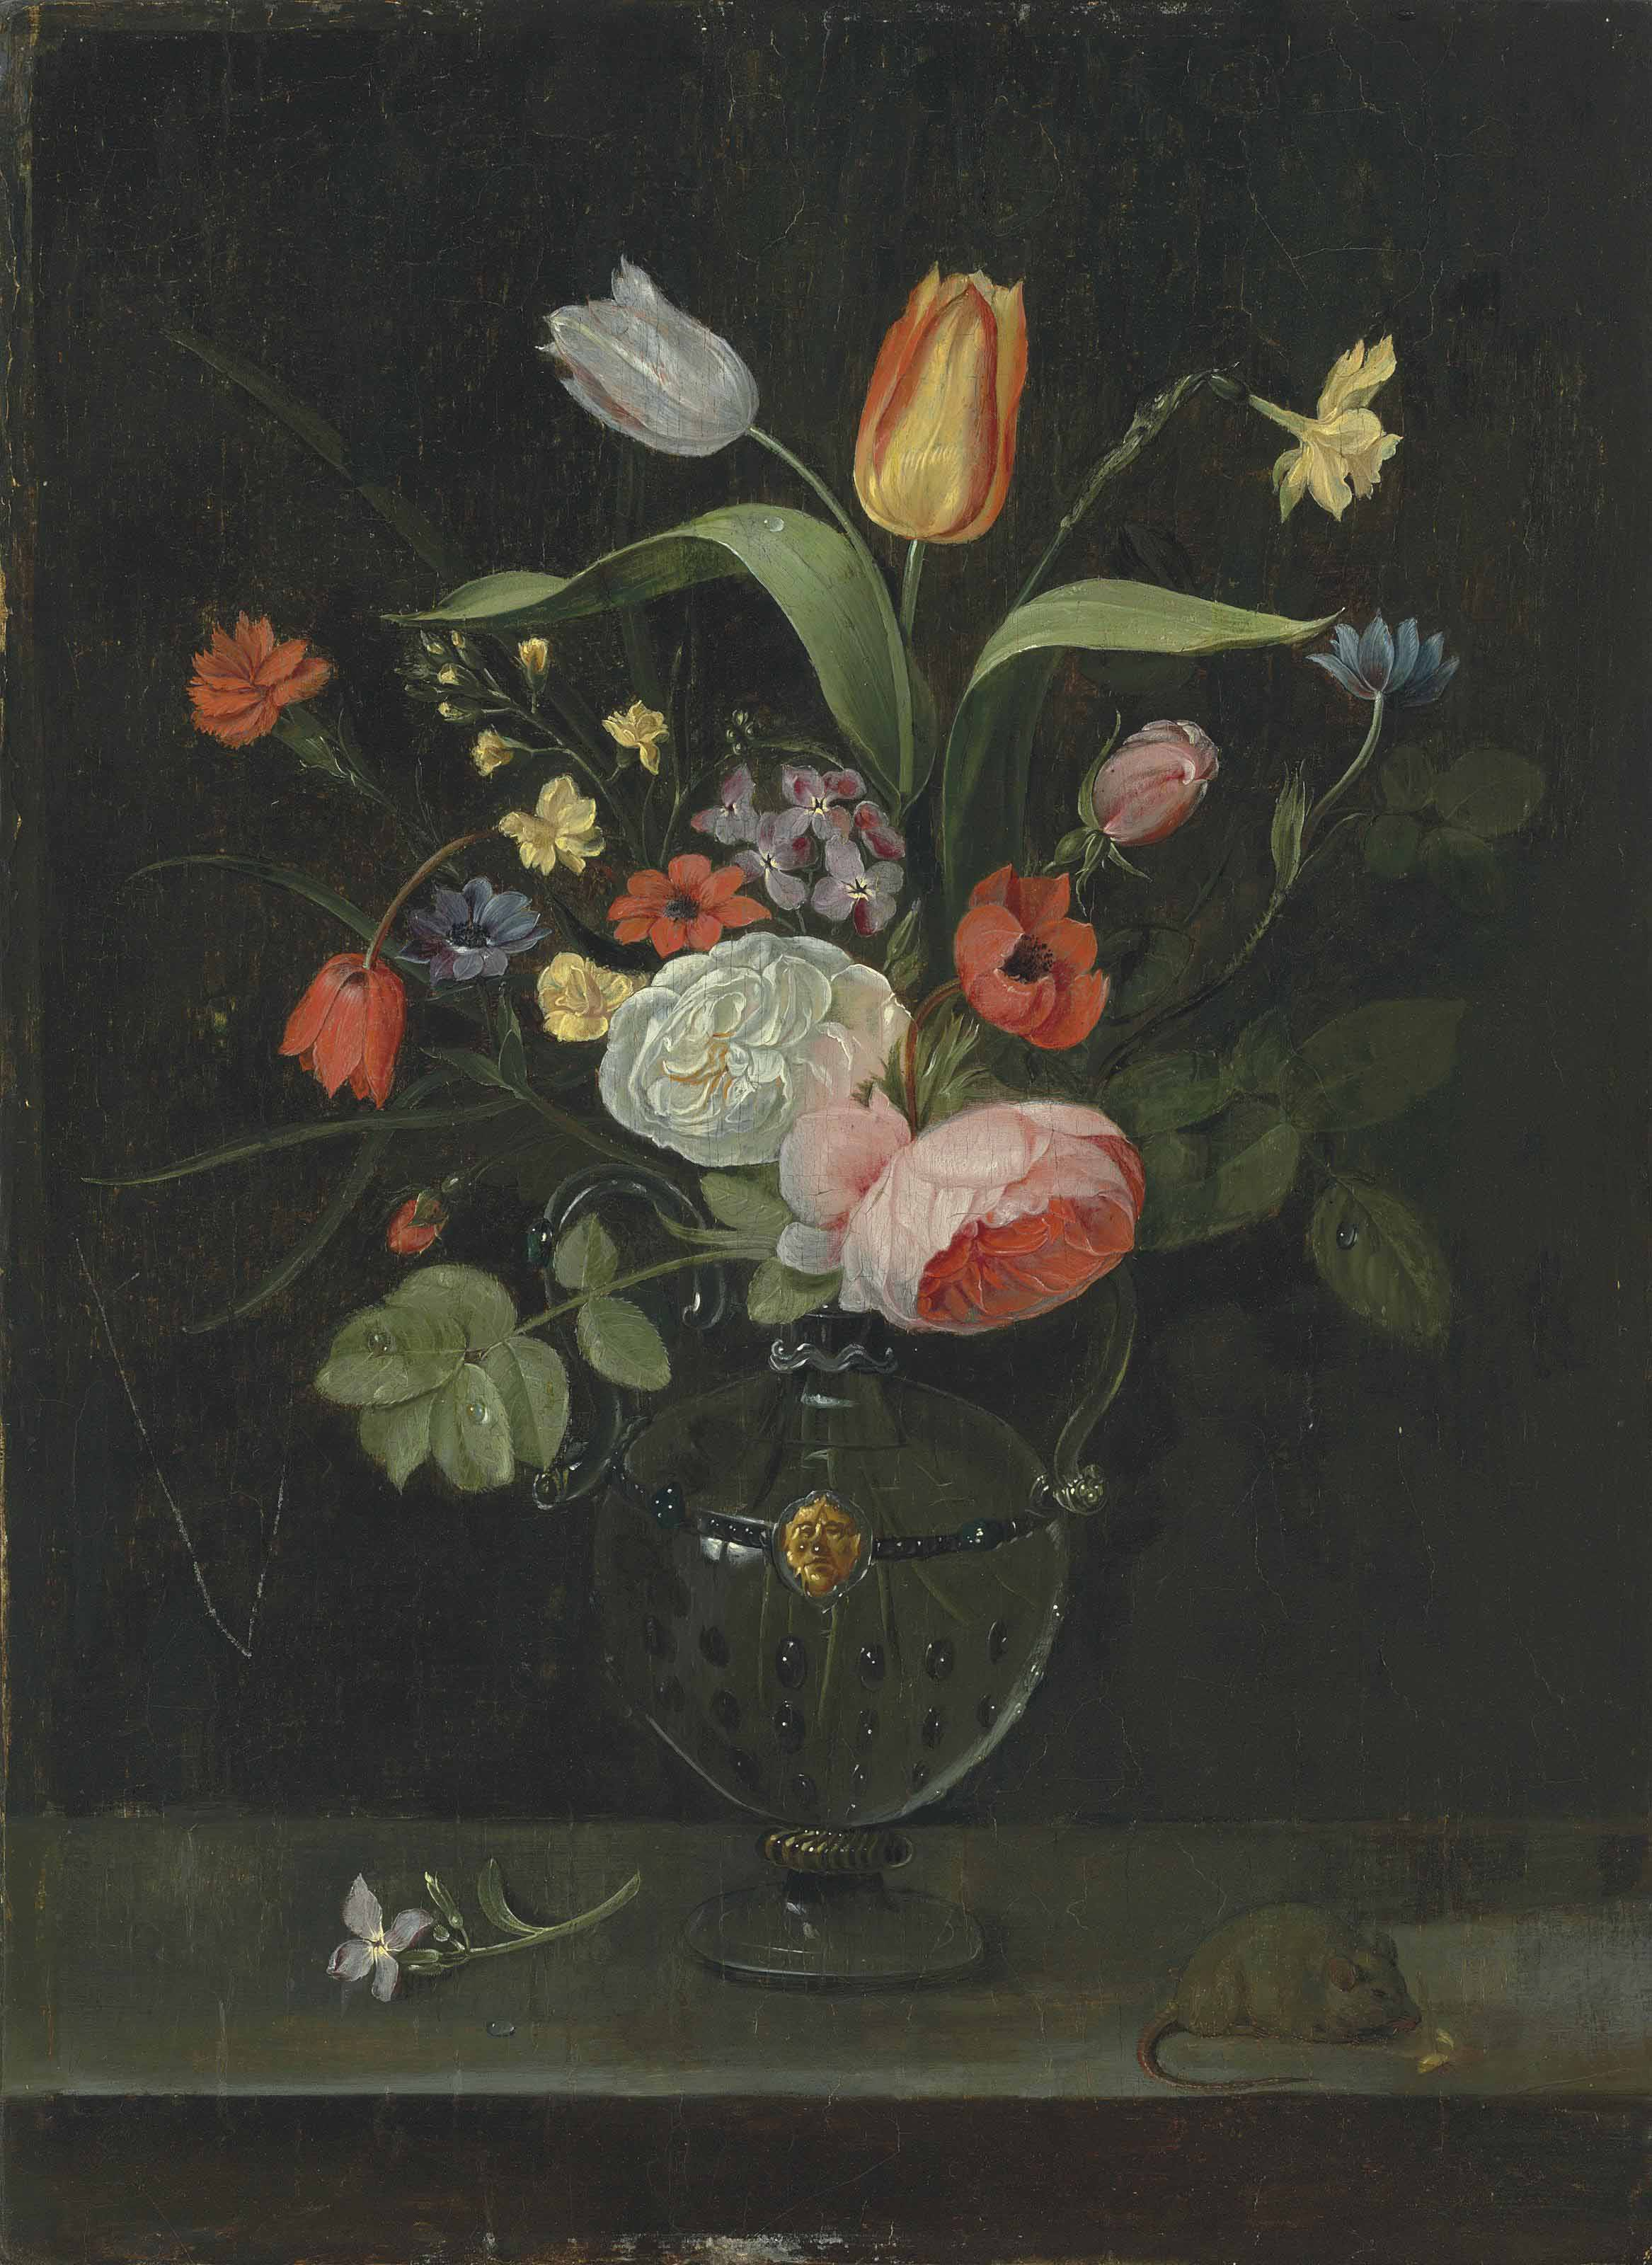 Roses, tulips, a daffodil and other flowers in a glass vase, on a stone ledge with a mouse